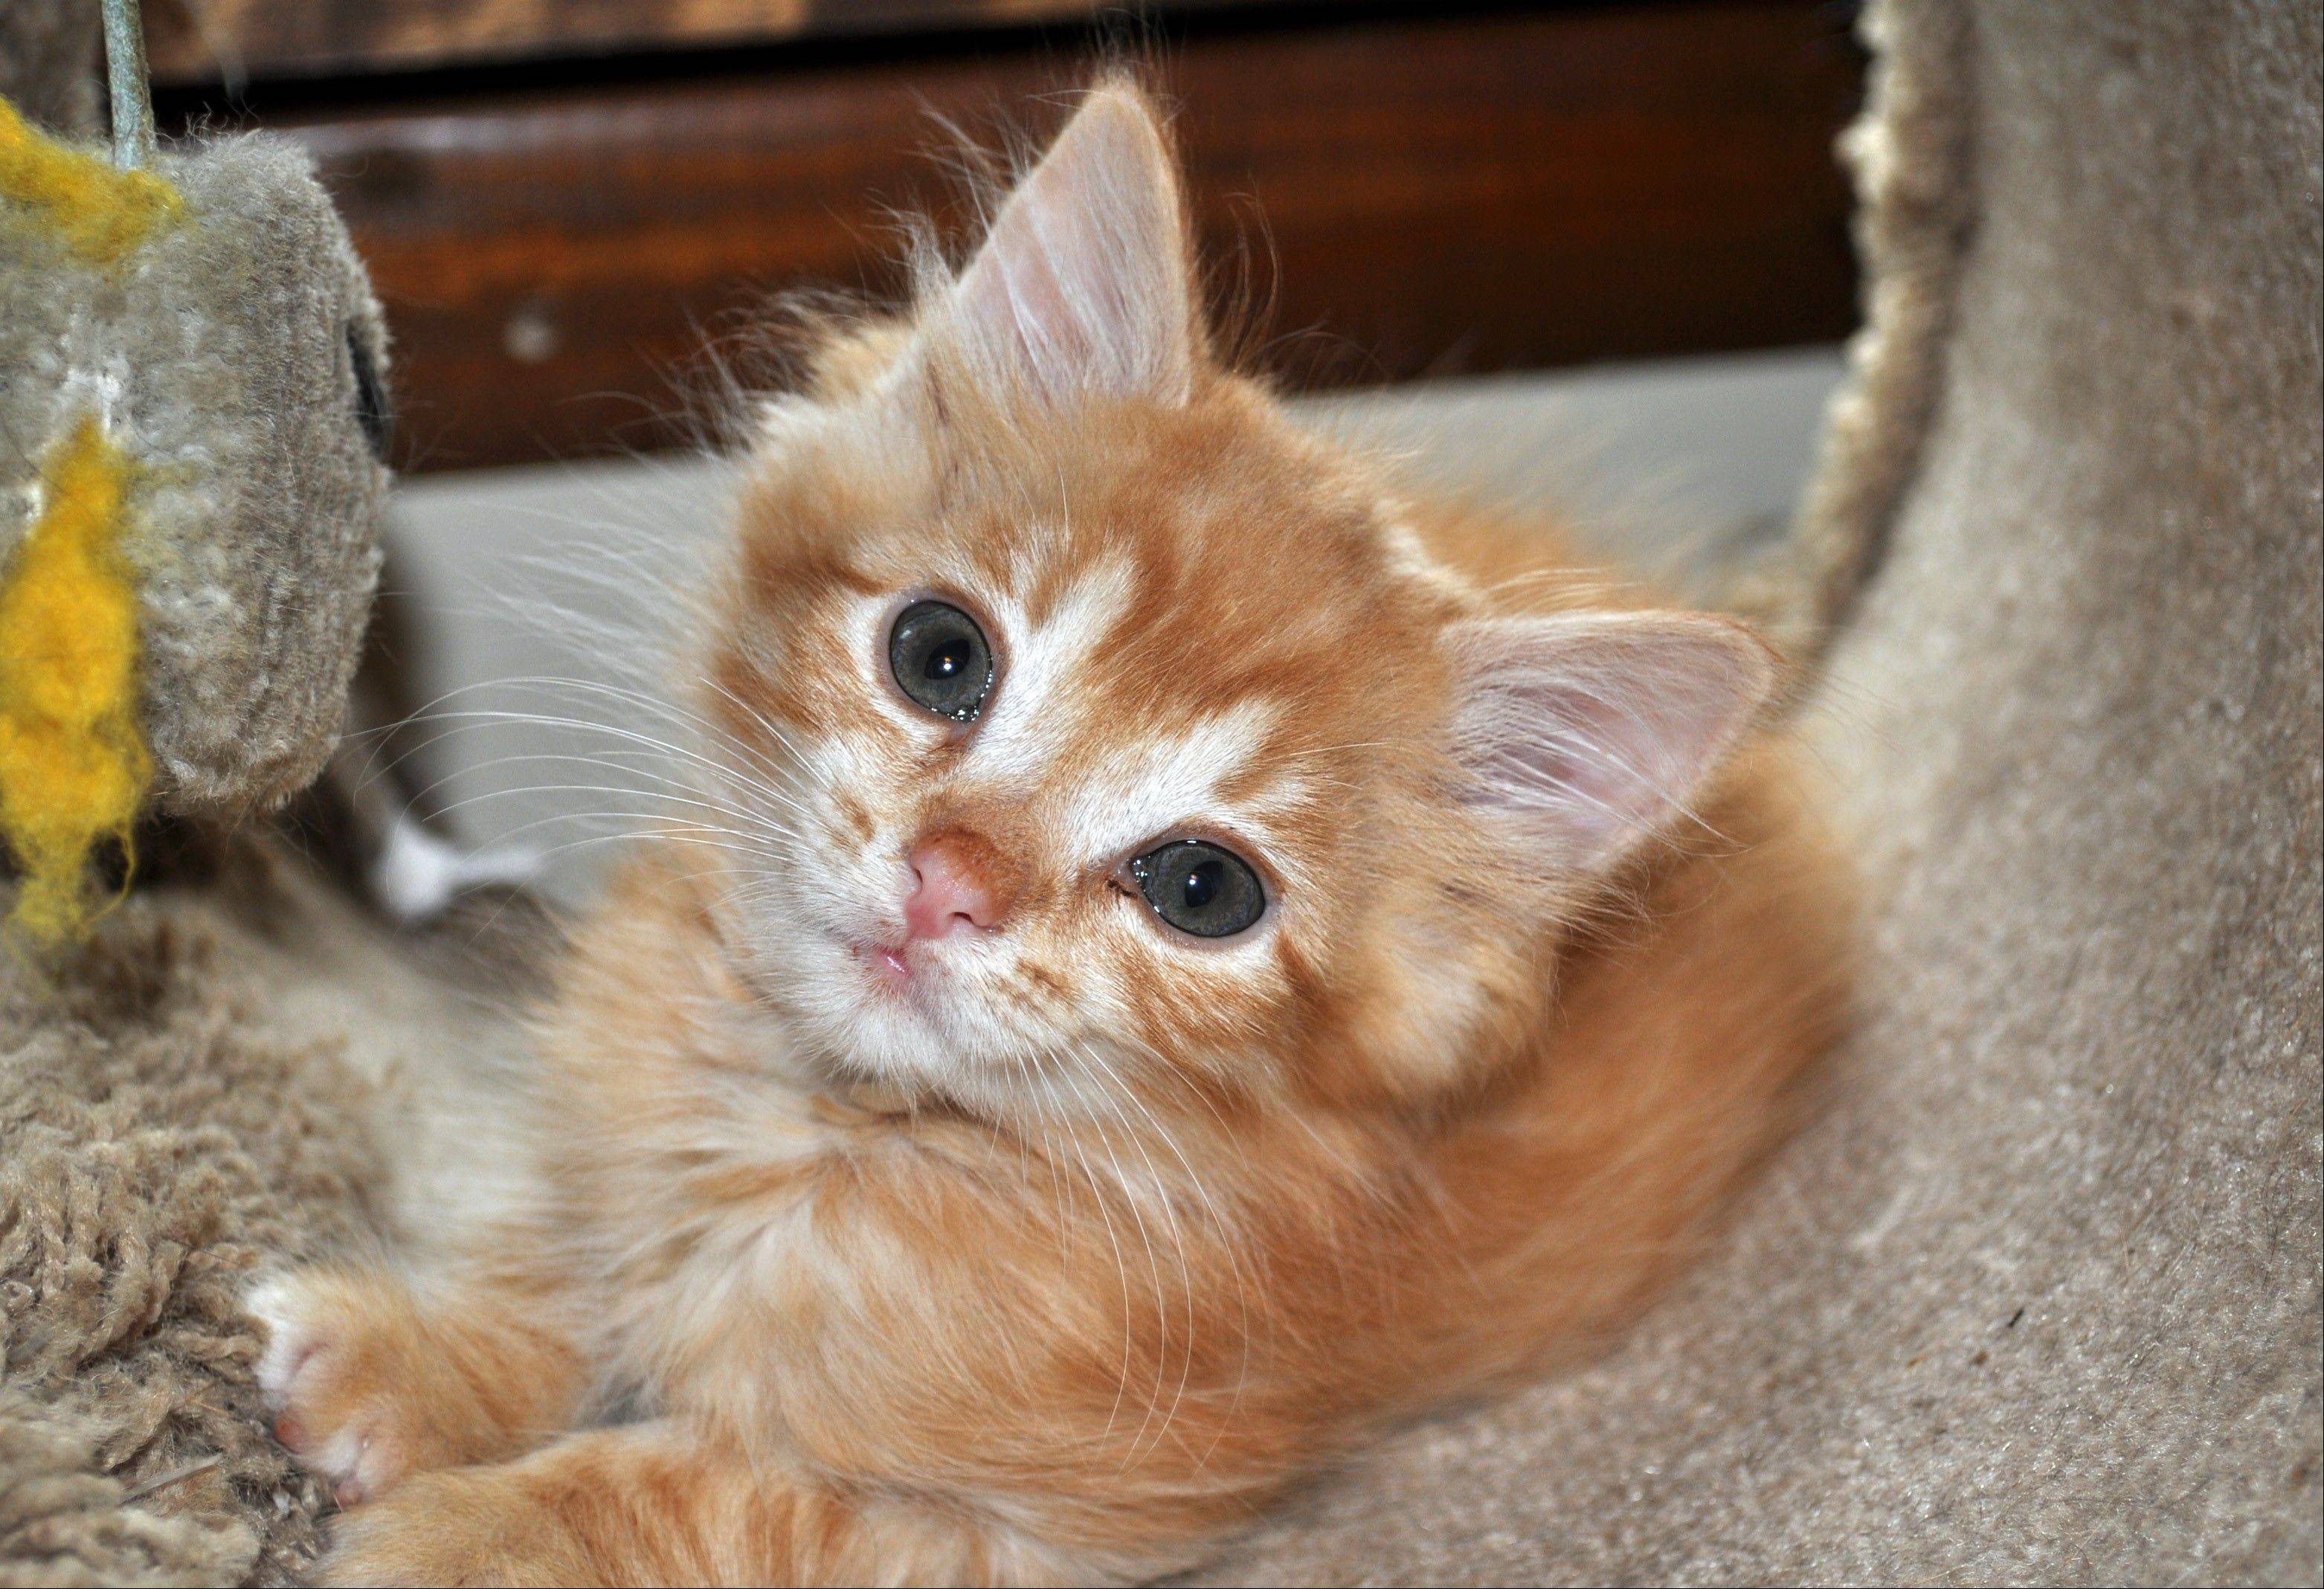 Three-month-old Cheddar, weighing a mere 1� pounds, plays in a cat tower last summer in Columbus, Ohio. In most cases, if a runted dog or cat makes it through six to eight weeks, it will likely survive and will probably get close to full size, according to experts.